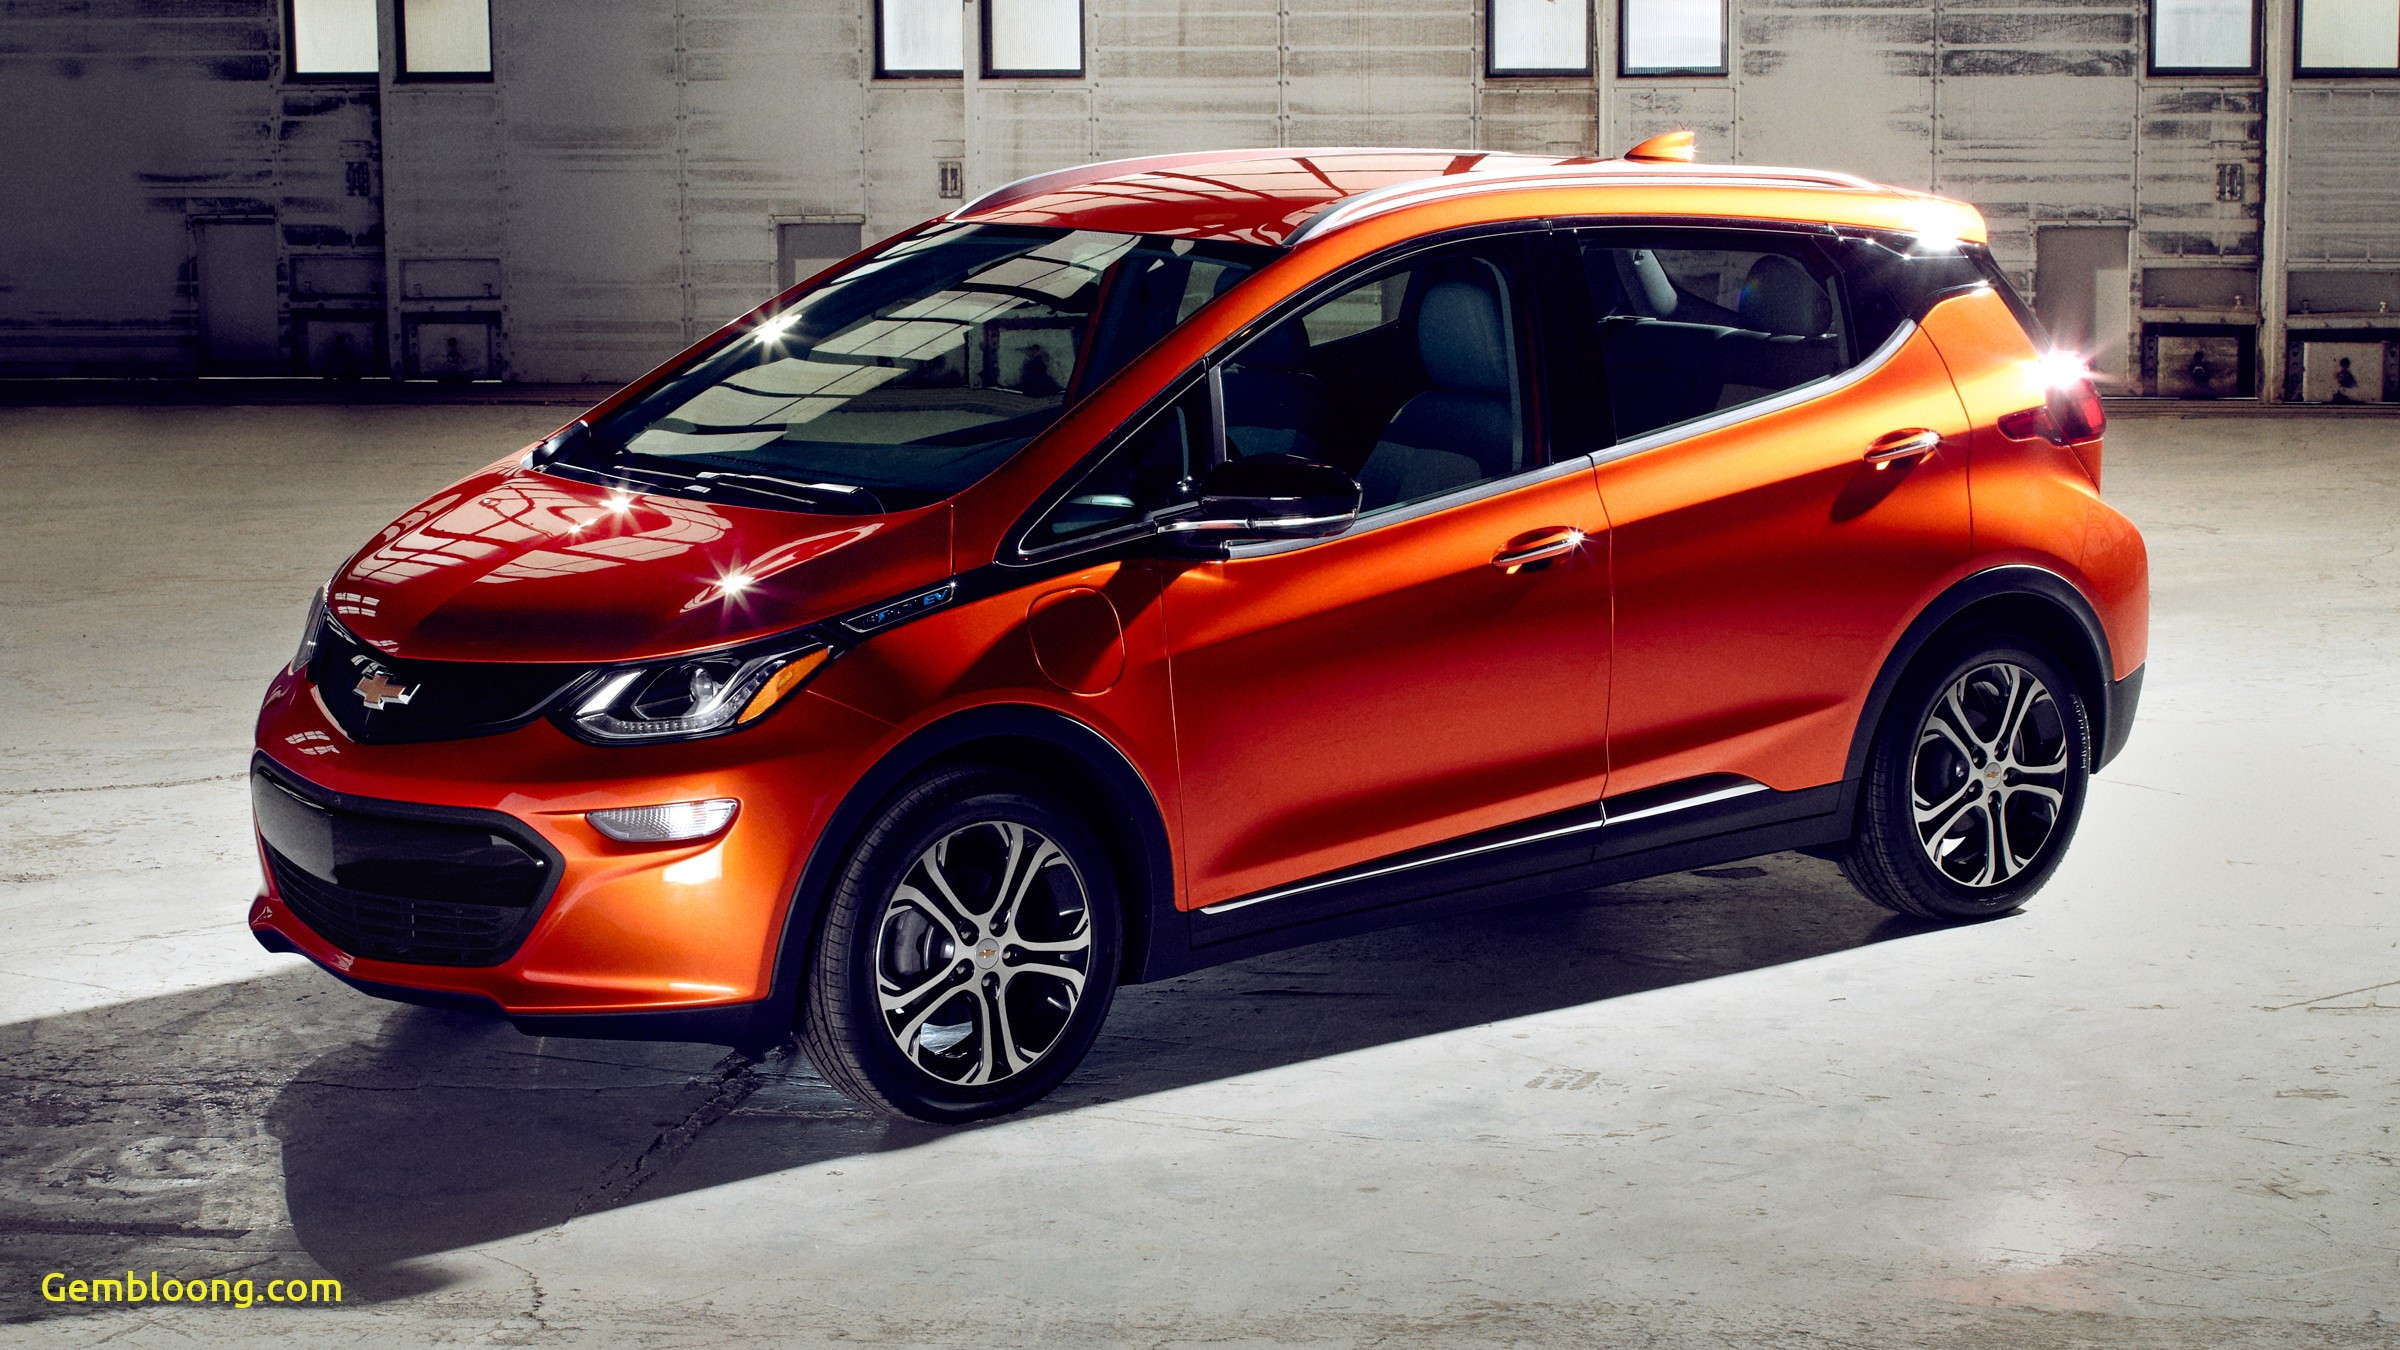 1 000 Cars for Sale Near Me Inspirational How Gm Beat Tesla to the First True Mass Market Electric Car